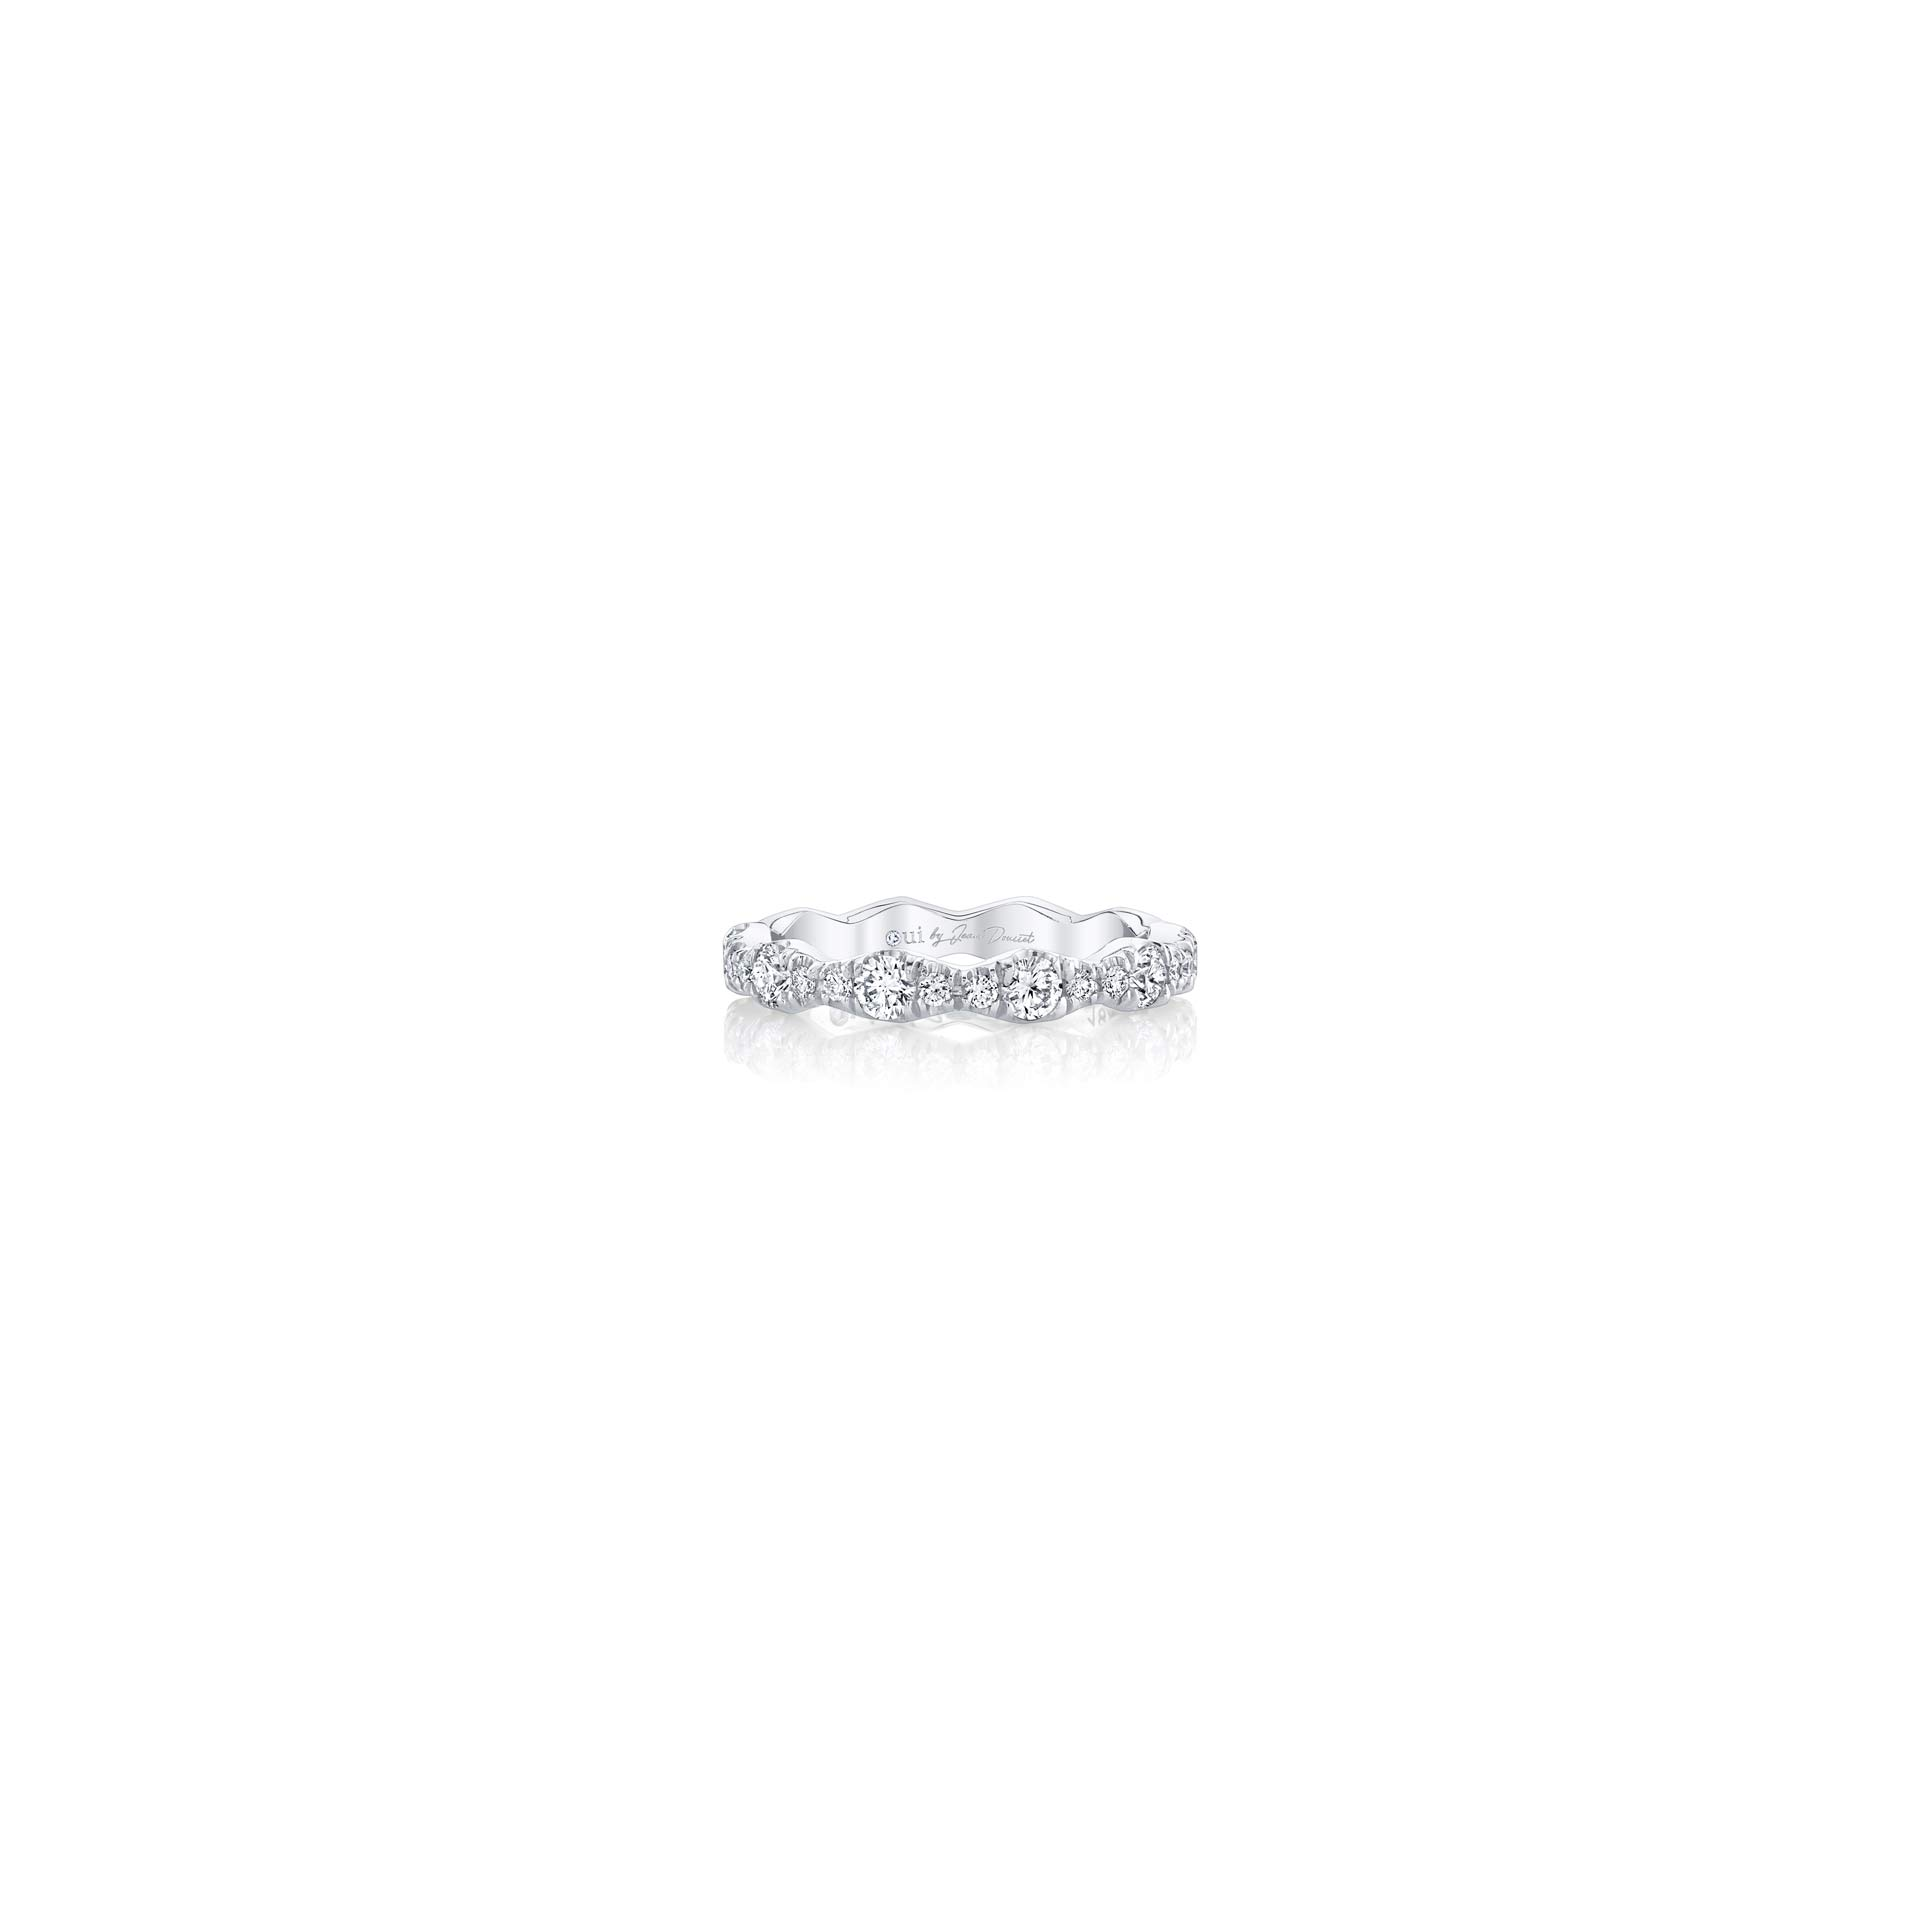 Yvonne Women's Wedding Band with a diamond pavé wave in 18k White Gold Front View by Oui by Jean Dousset